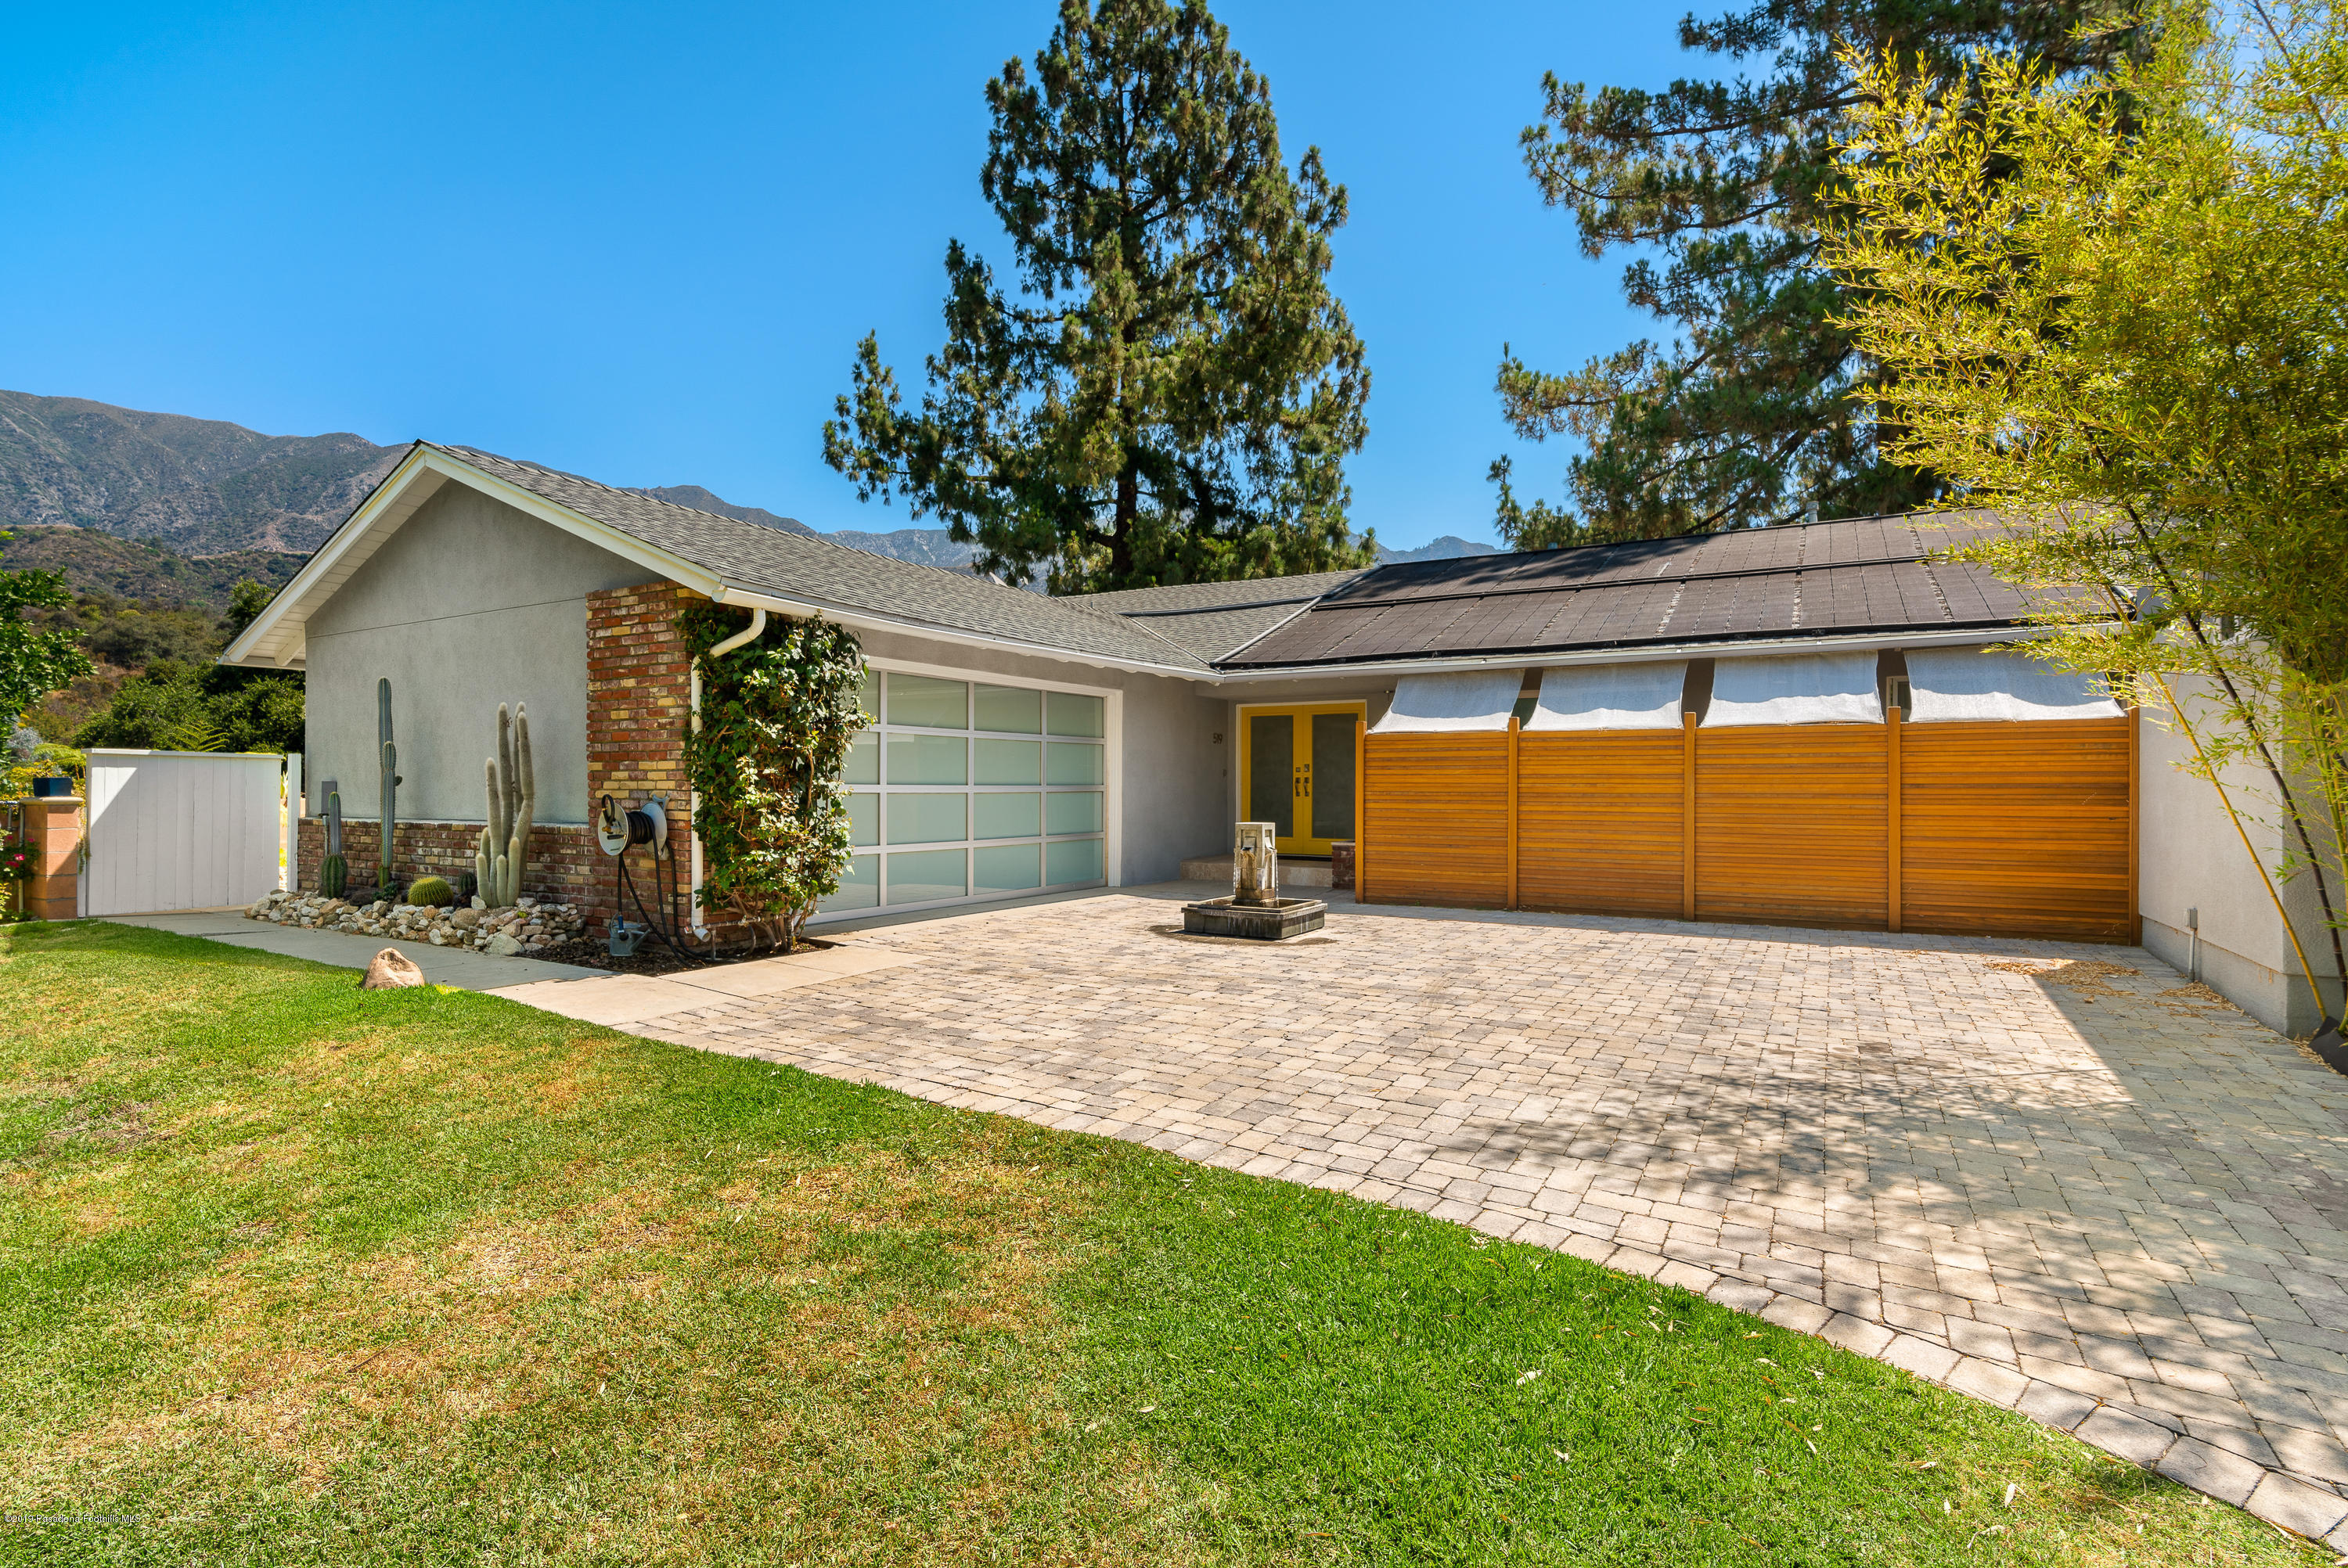 519 W Loma Alta Drive, Altadena, California 3 Bedroom as one of Homes & Land Real Estate